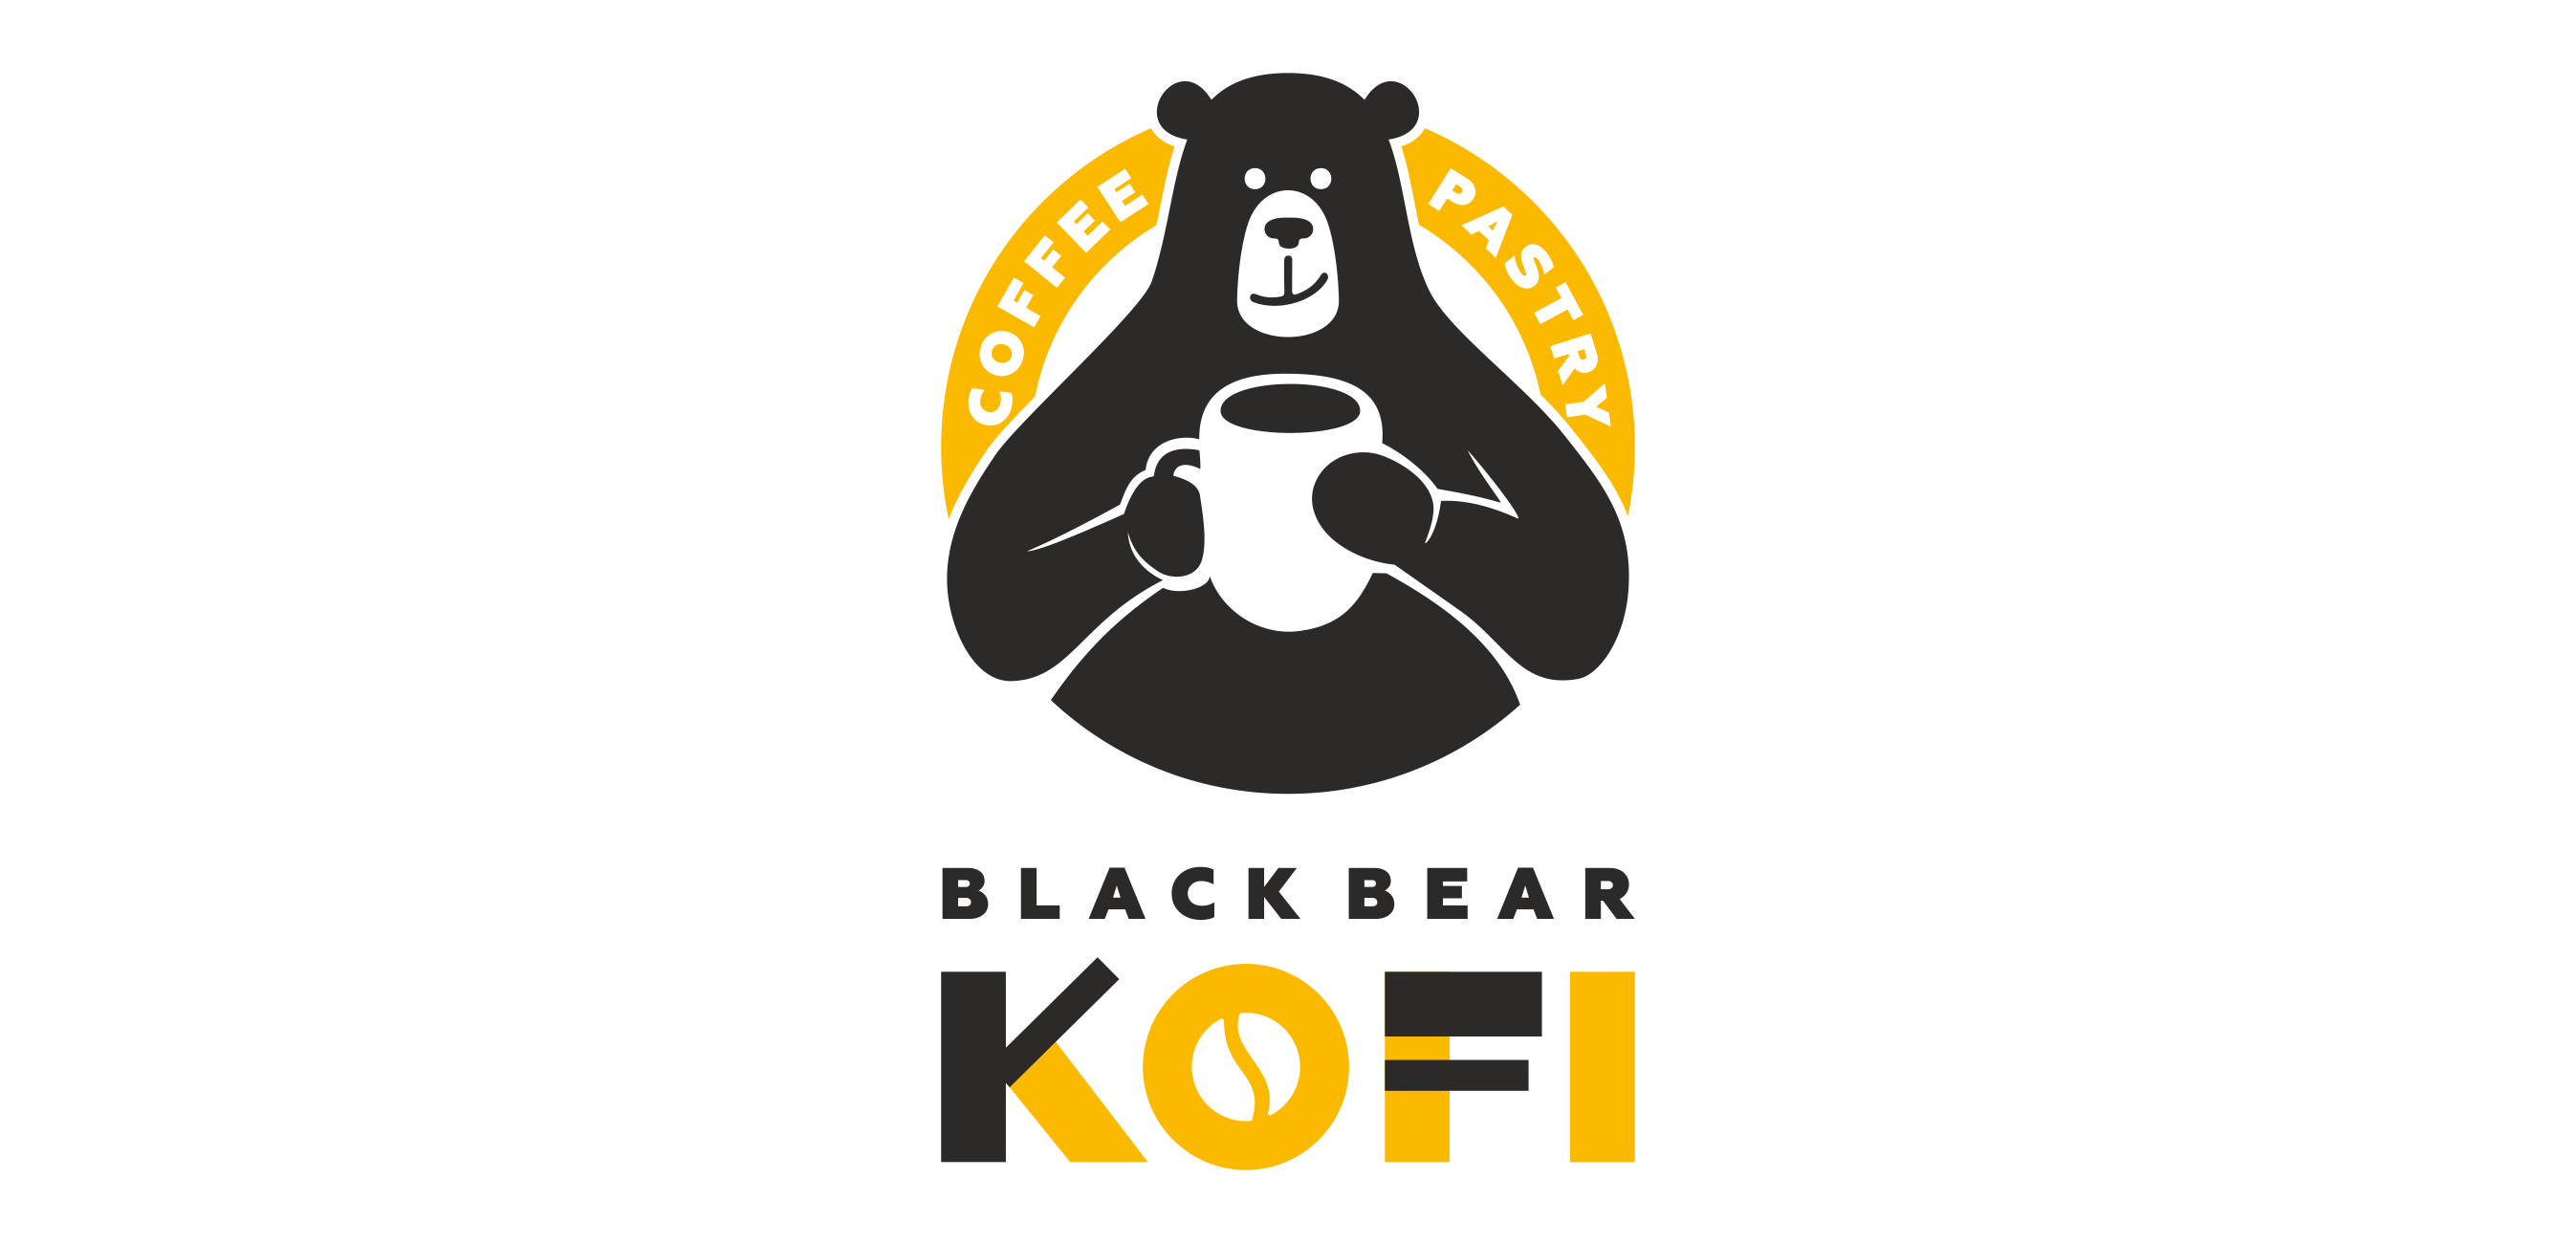 Black Bear Kofi